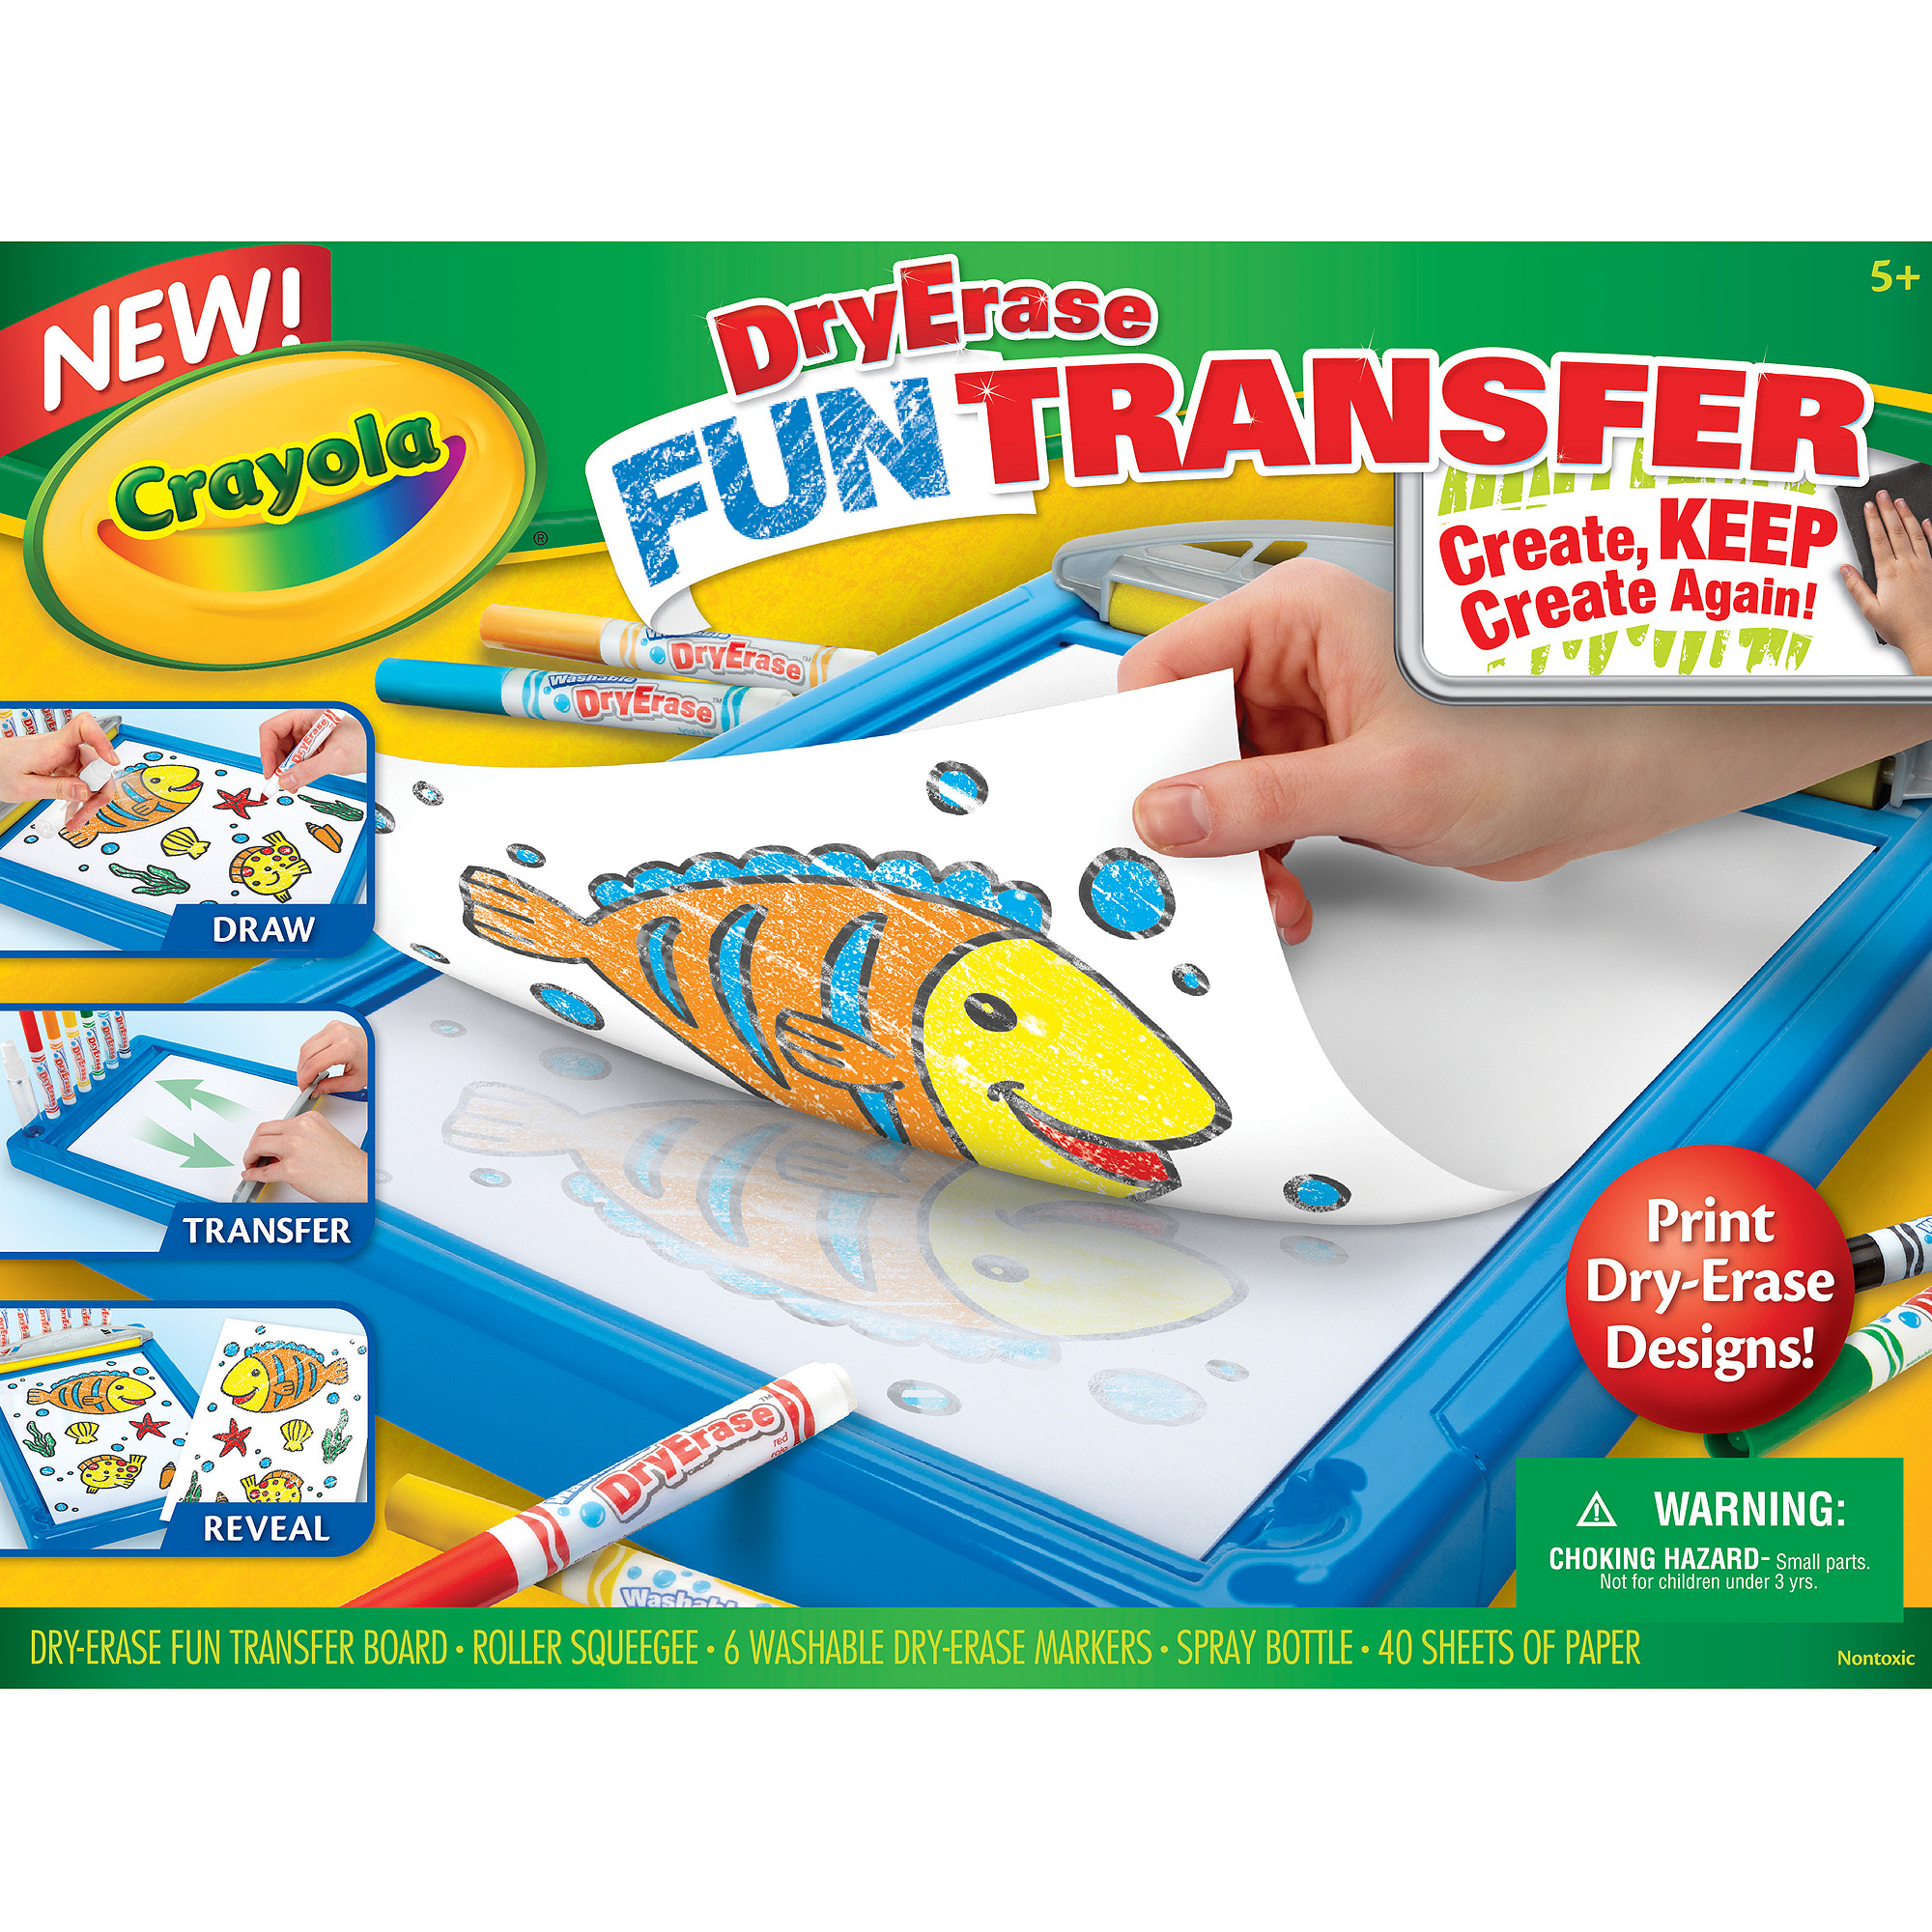 Dry Erase Fun Transfer Kit Print Maker